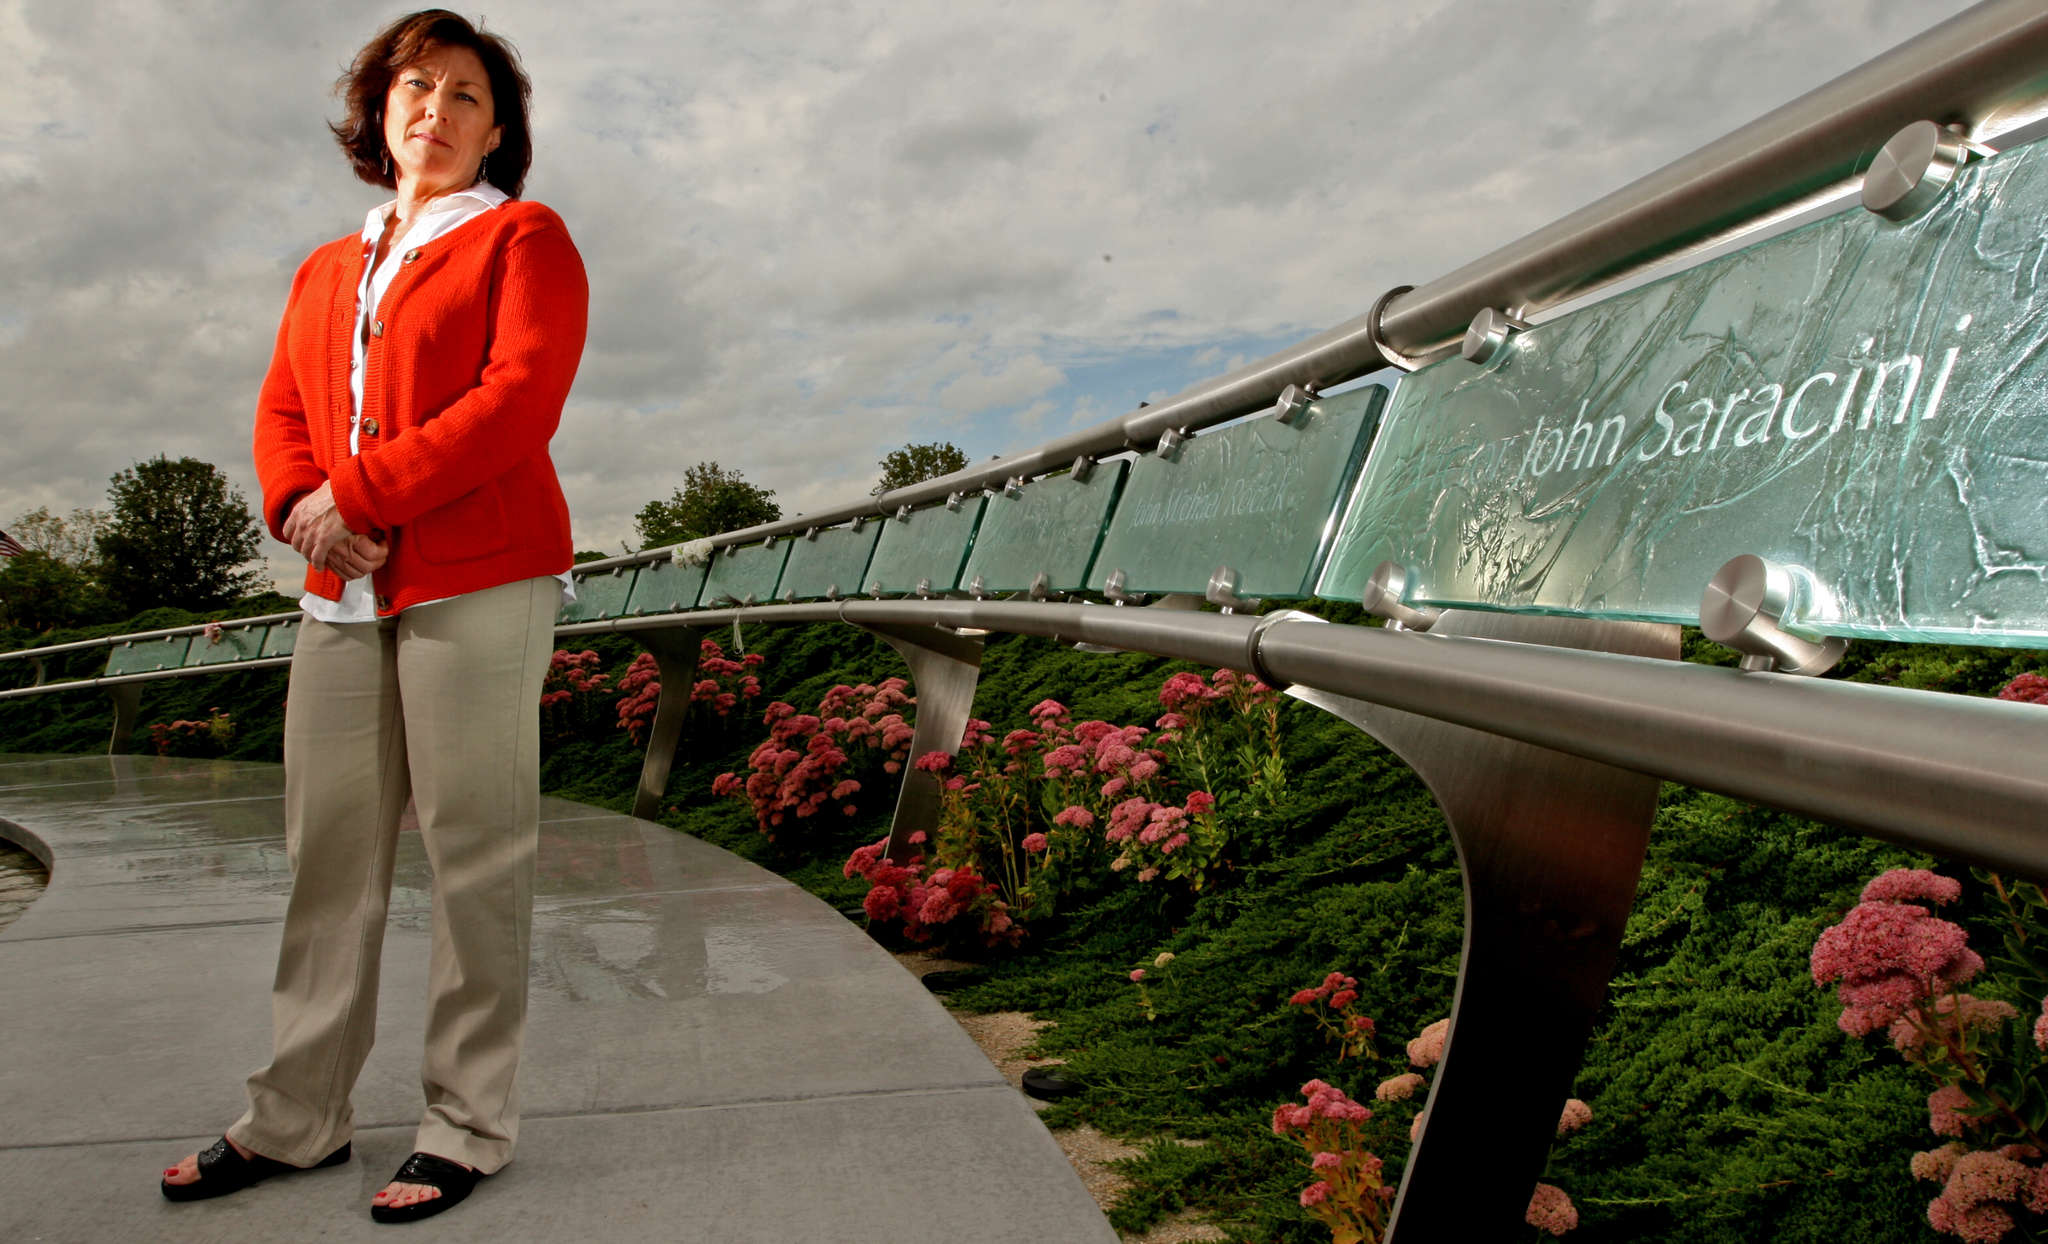 Ellen Saracini, at the Garden of Reflection Memorial, is the widow of the pilot whose plane hit the south tower.